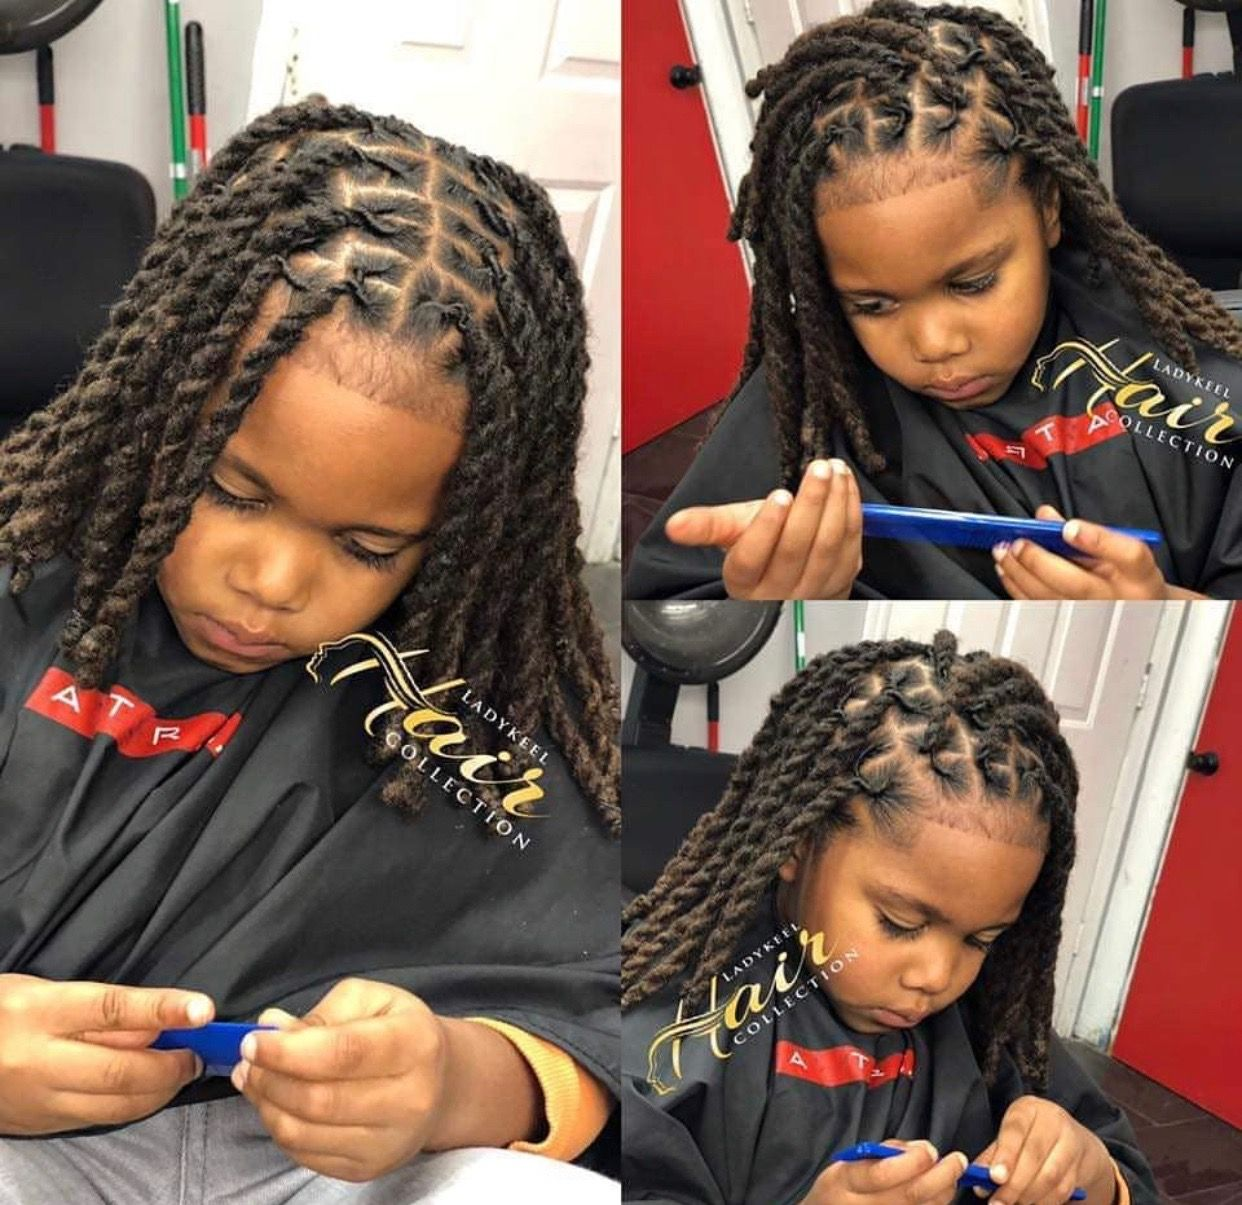 Pin By C Baby On Family Children Friendship Kids Hairstyles Kids Braided Hairstyles Braids For Boys